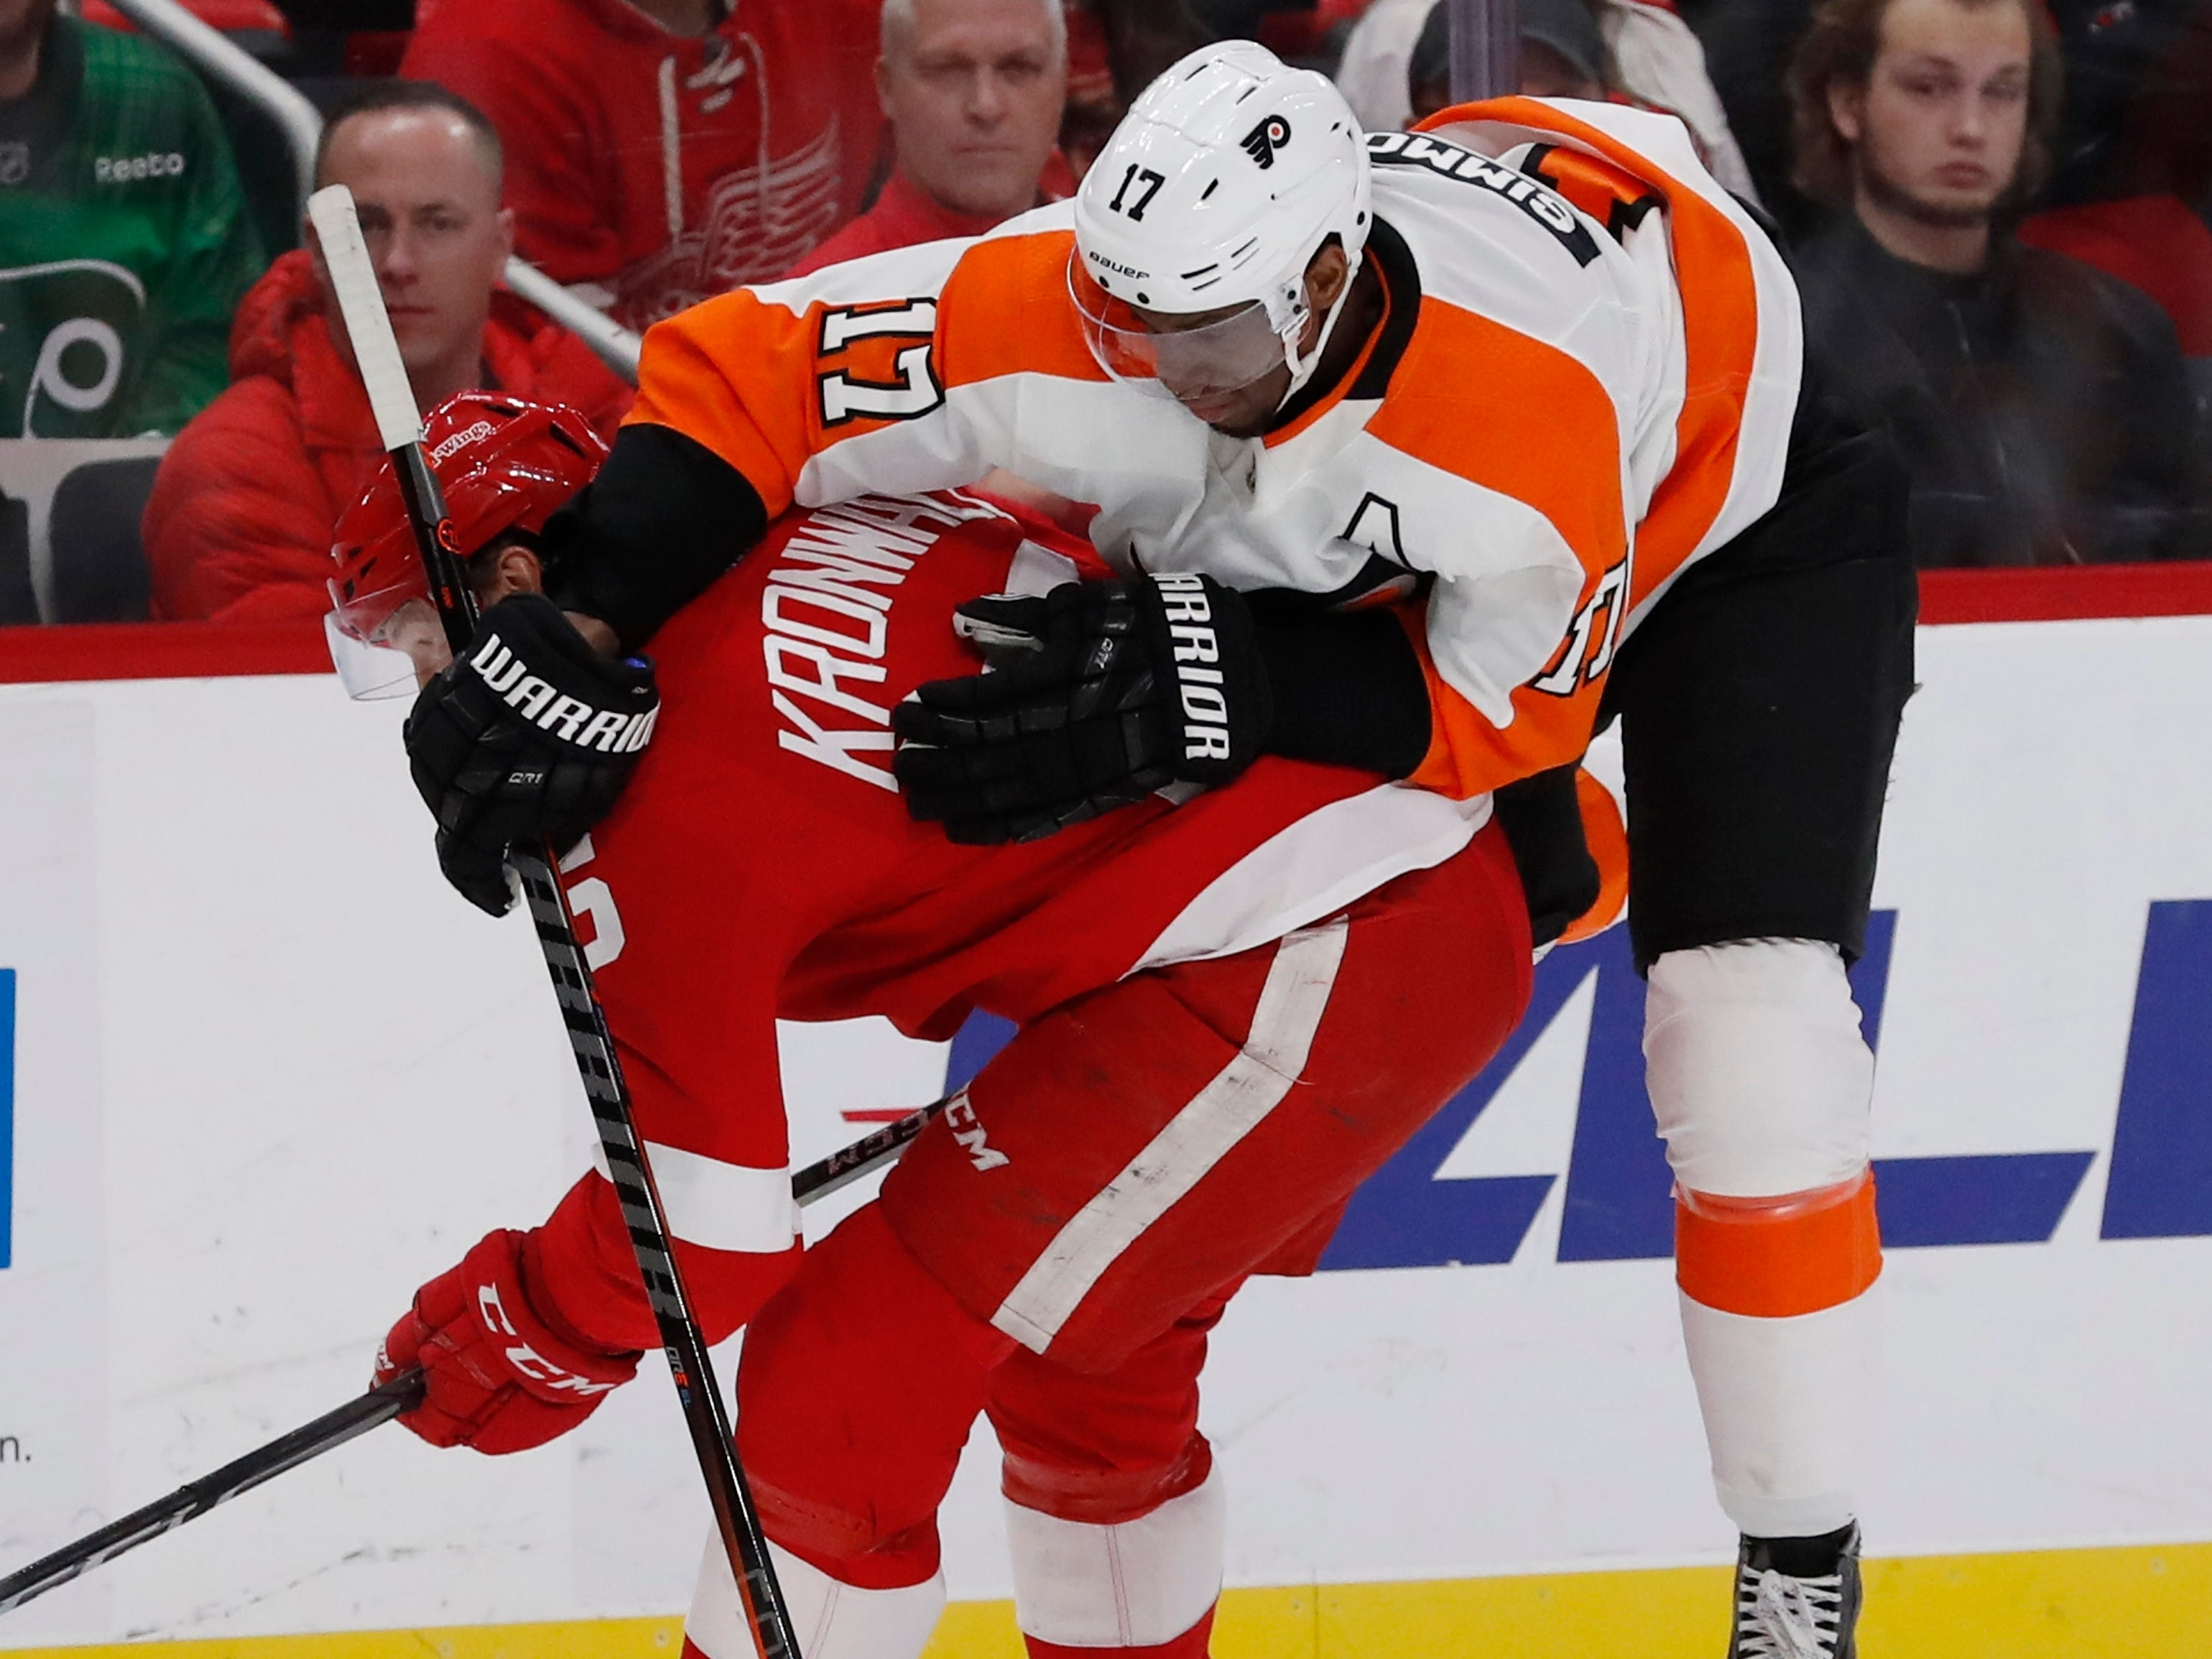 Flyers right wing Wayne Simmonds (17) runs into Red Wings defenseman Niklas Kronwall (55) during the first period on Feb. 17, 2019, in Detroit.